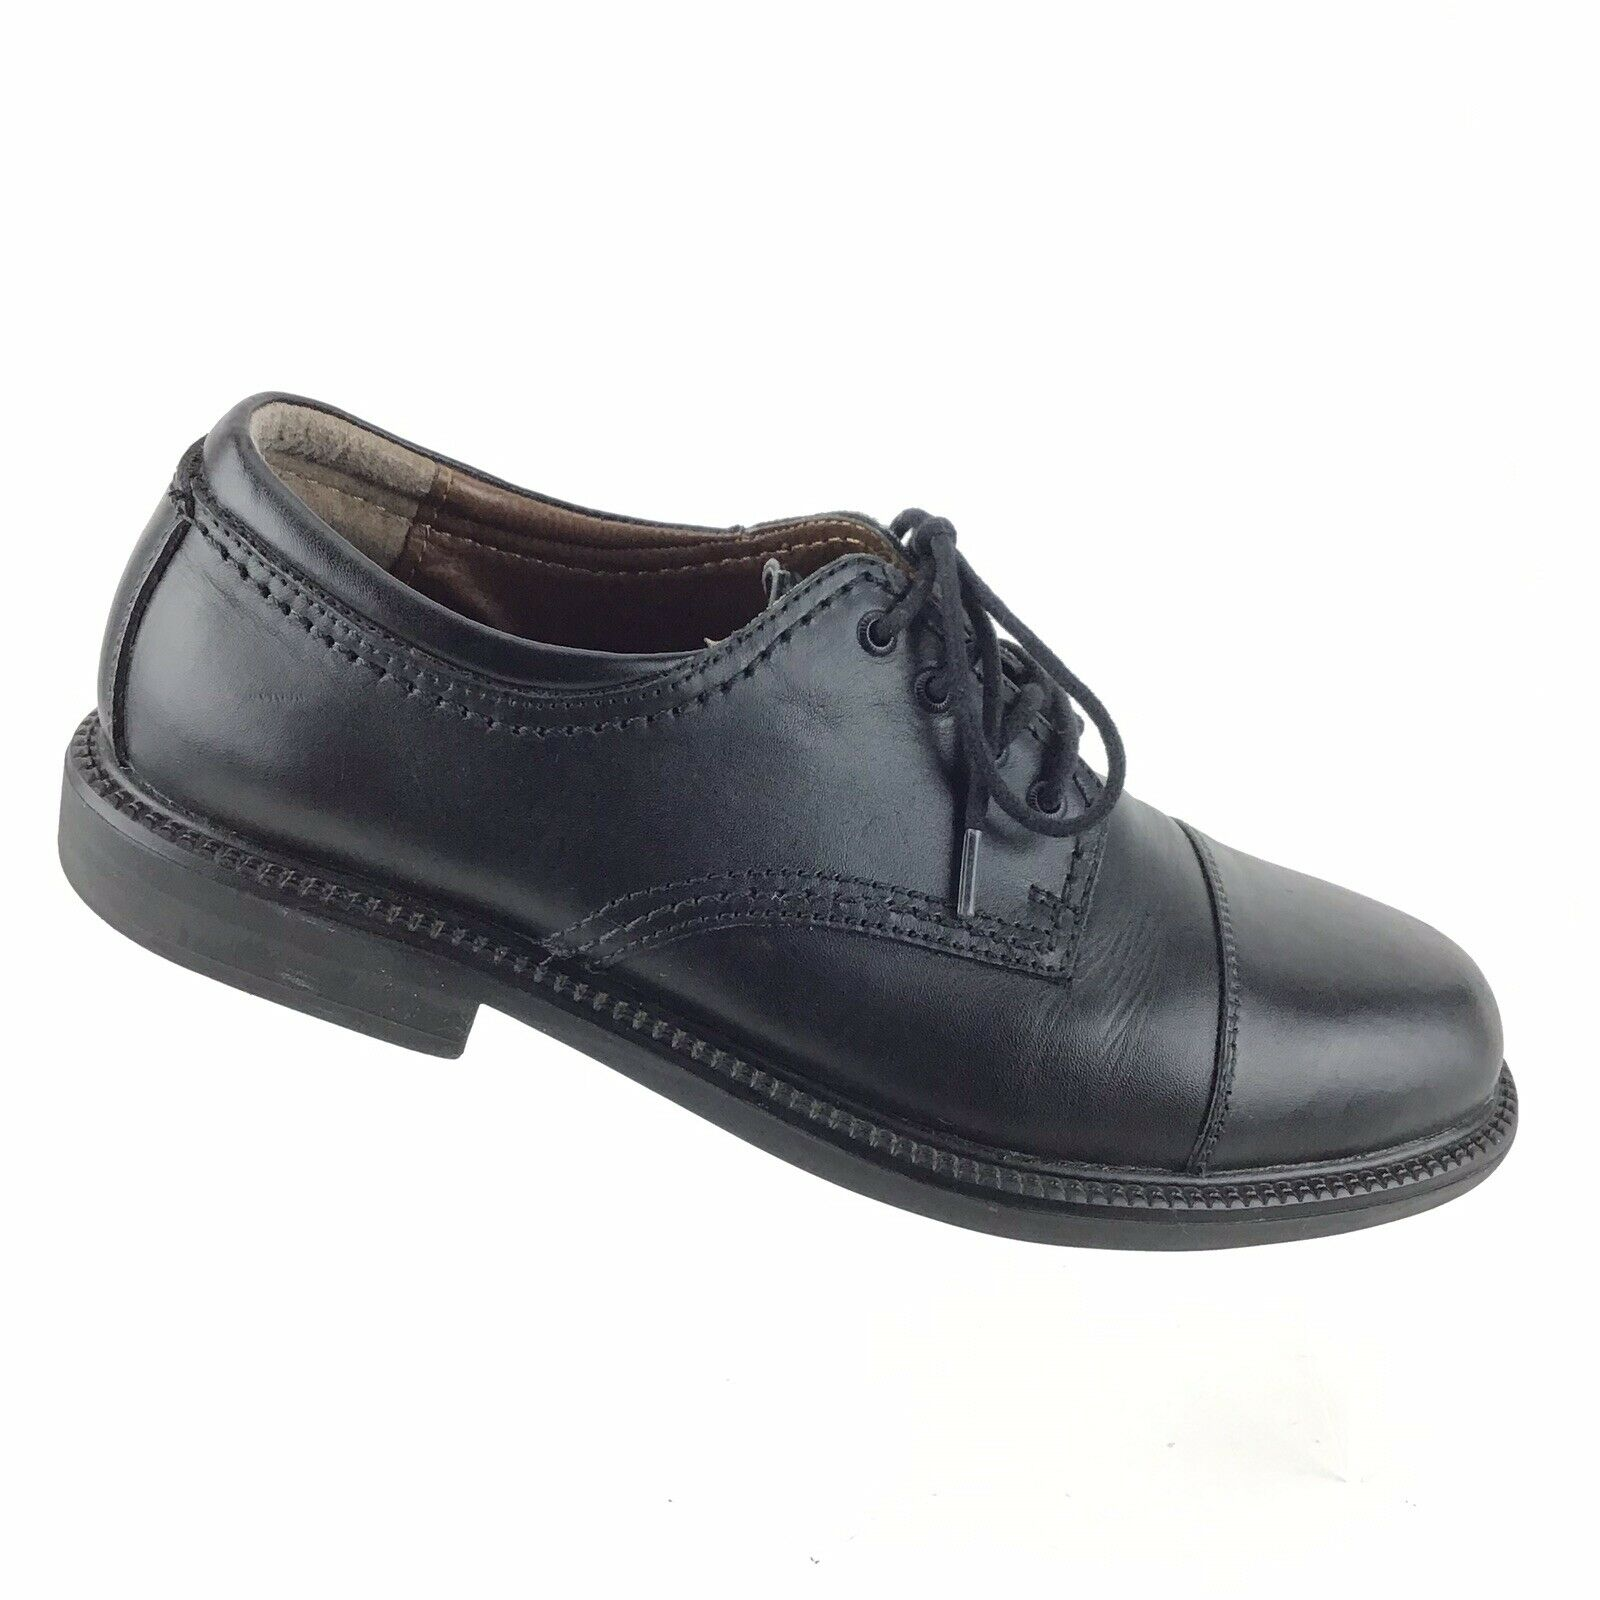 Dockers Cap-Toe Oxfords Black Leather Lace-Up Dress Casual Mens 9 M shoes R5S6